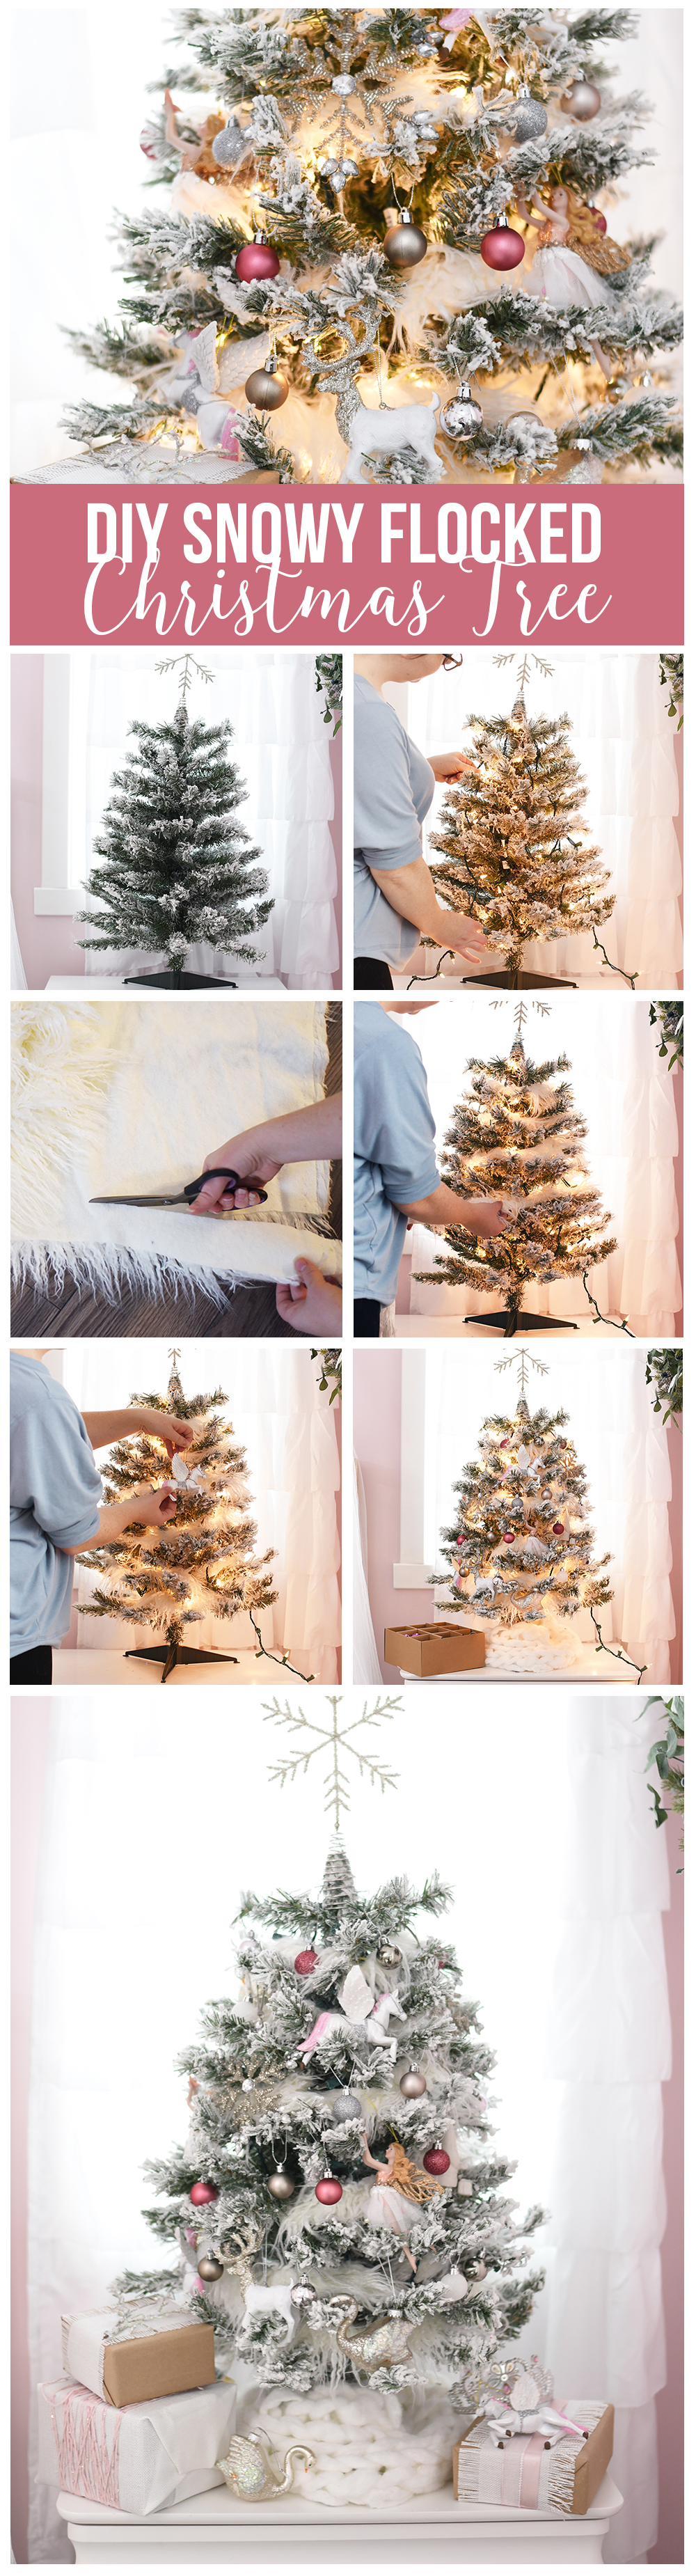 DIY extra snowy, magical flocked Christmas tree idea